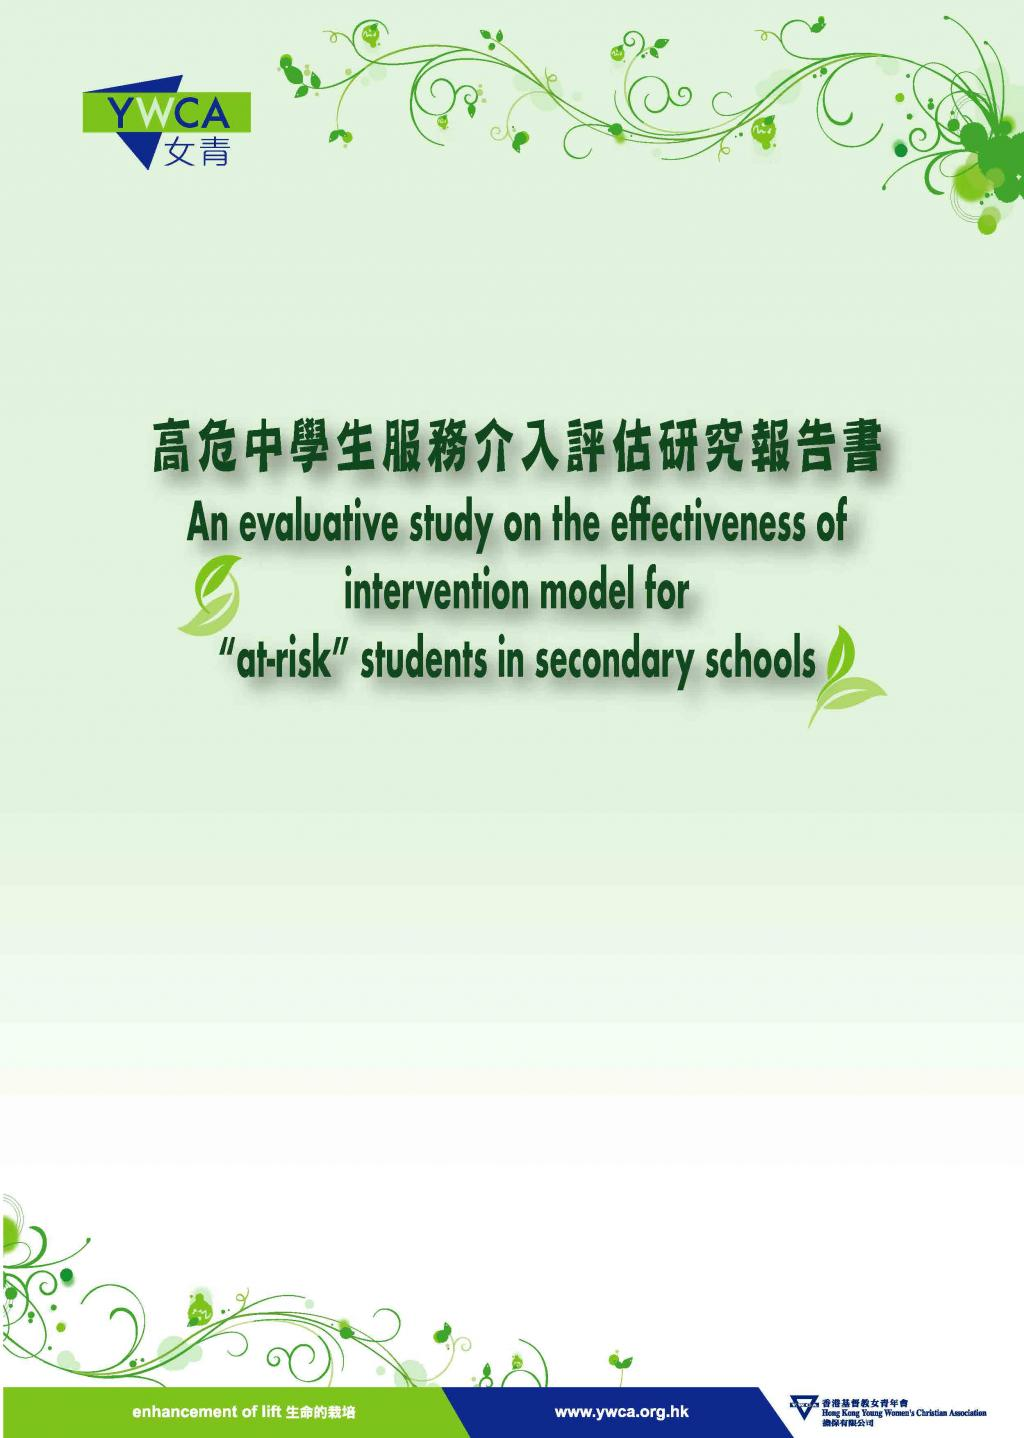 "An evaluative study on the effectiveness of intervention model for ""at-risk"" students in secondary schools"